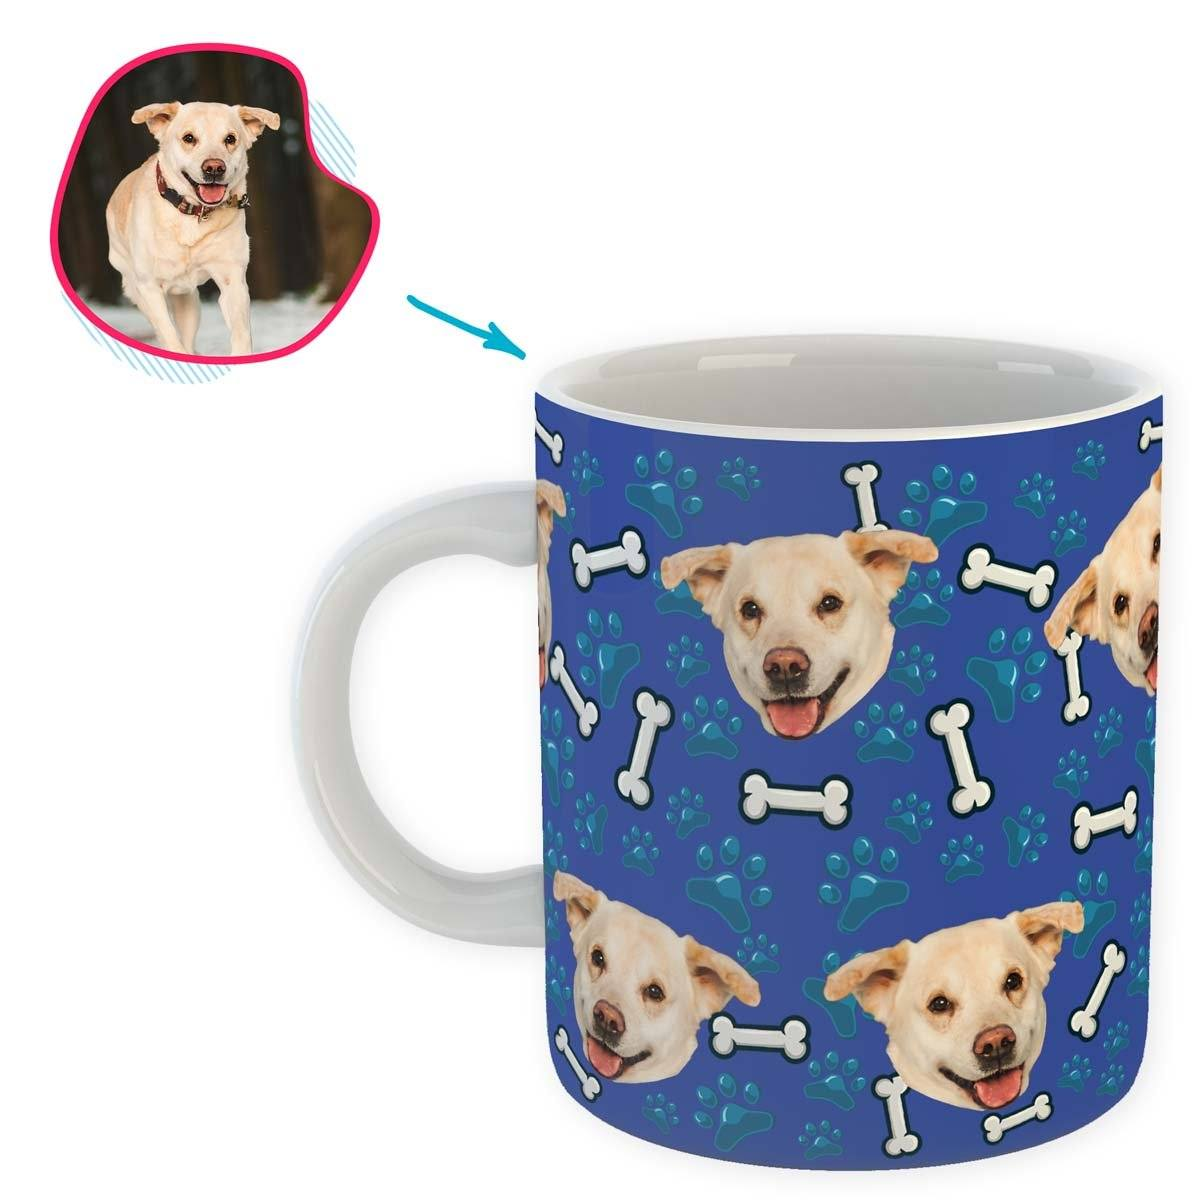 darkblue Dog mug personalized with photo of face printed on it